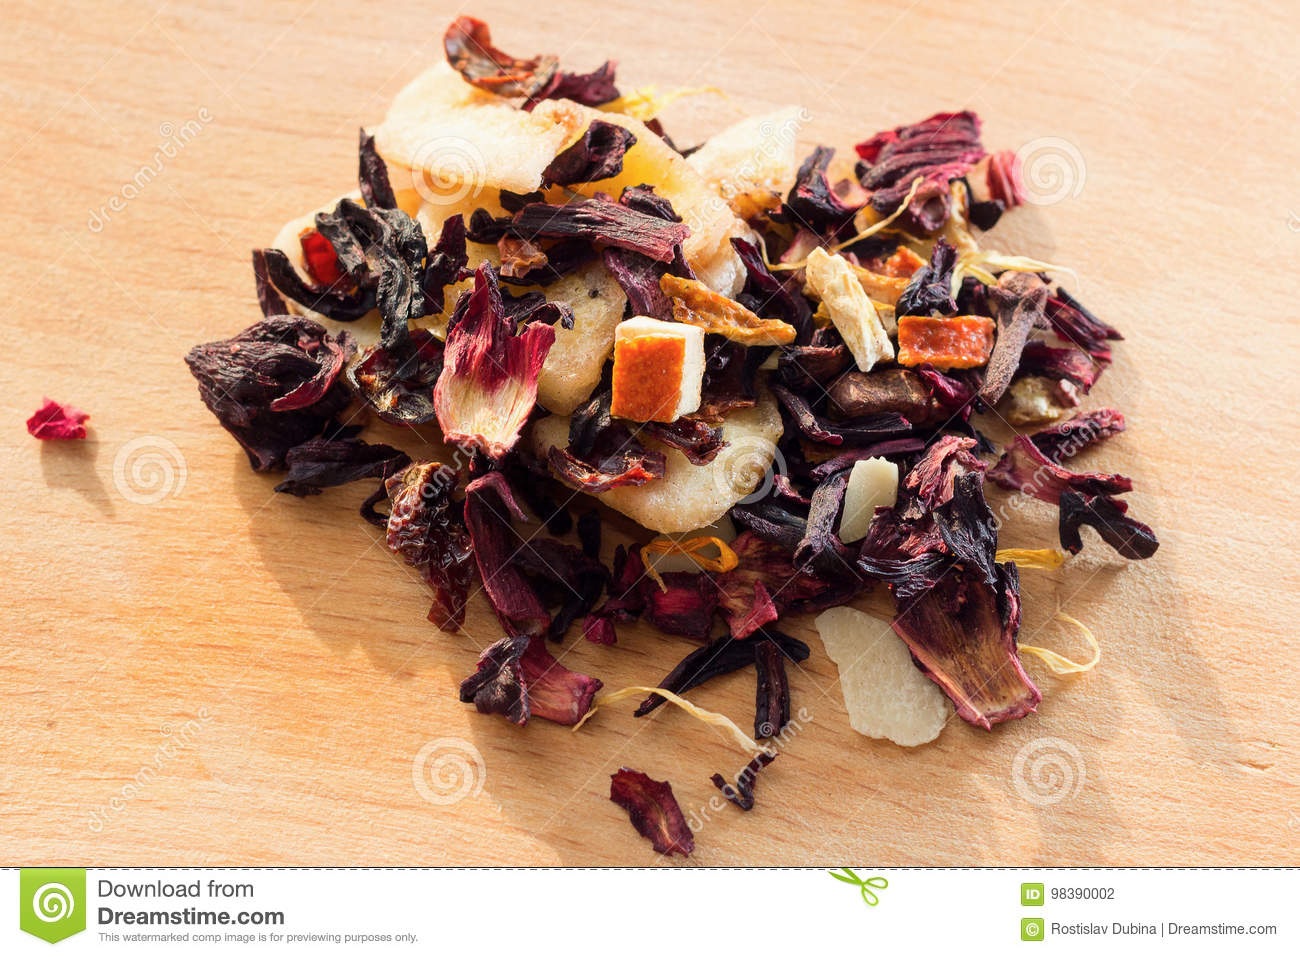 Pile of fruit tea with petals and dry fruit e composition of the royalty free stock photo izmirmasajfo Images